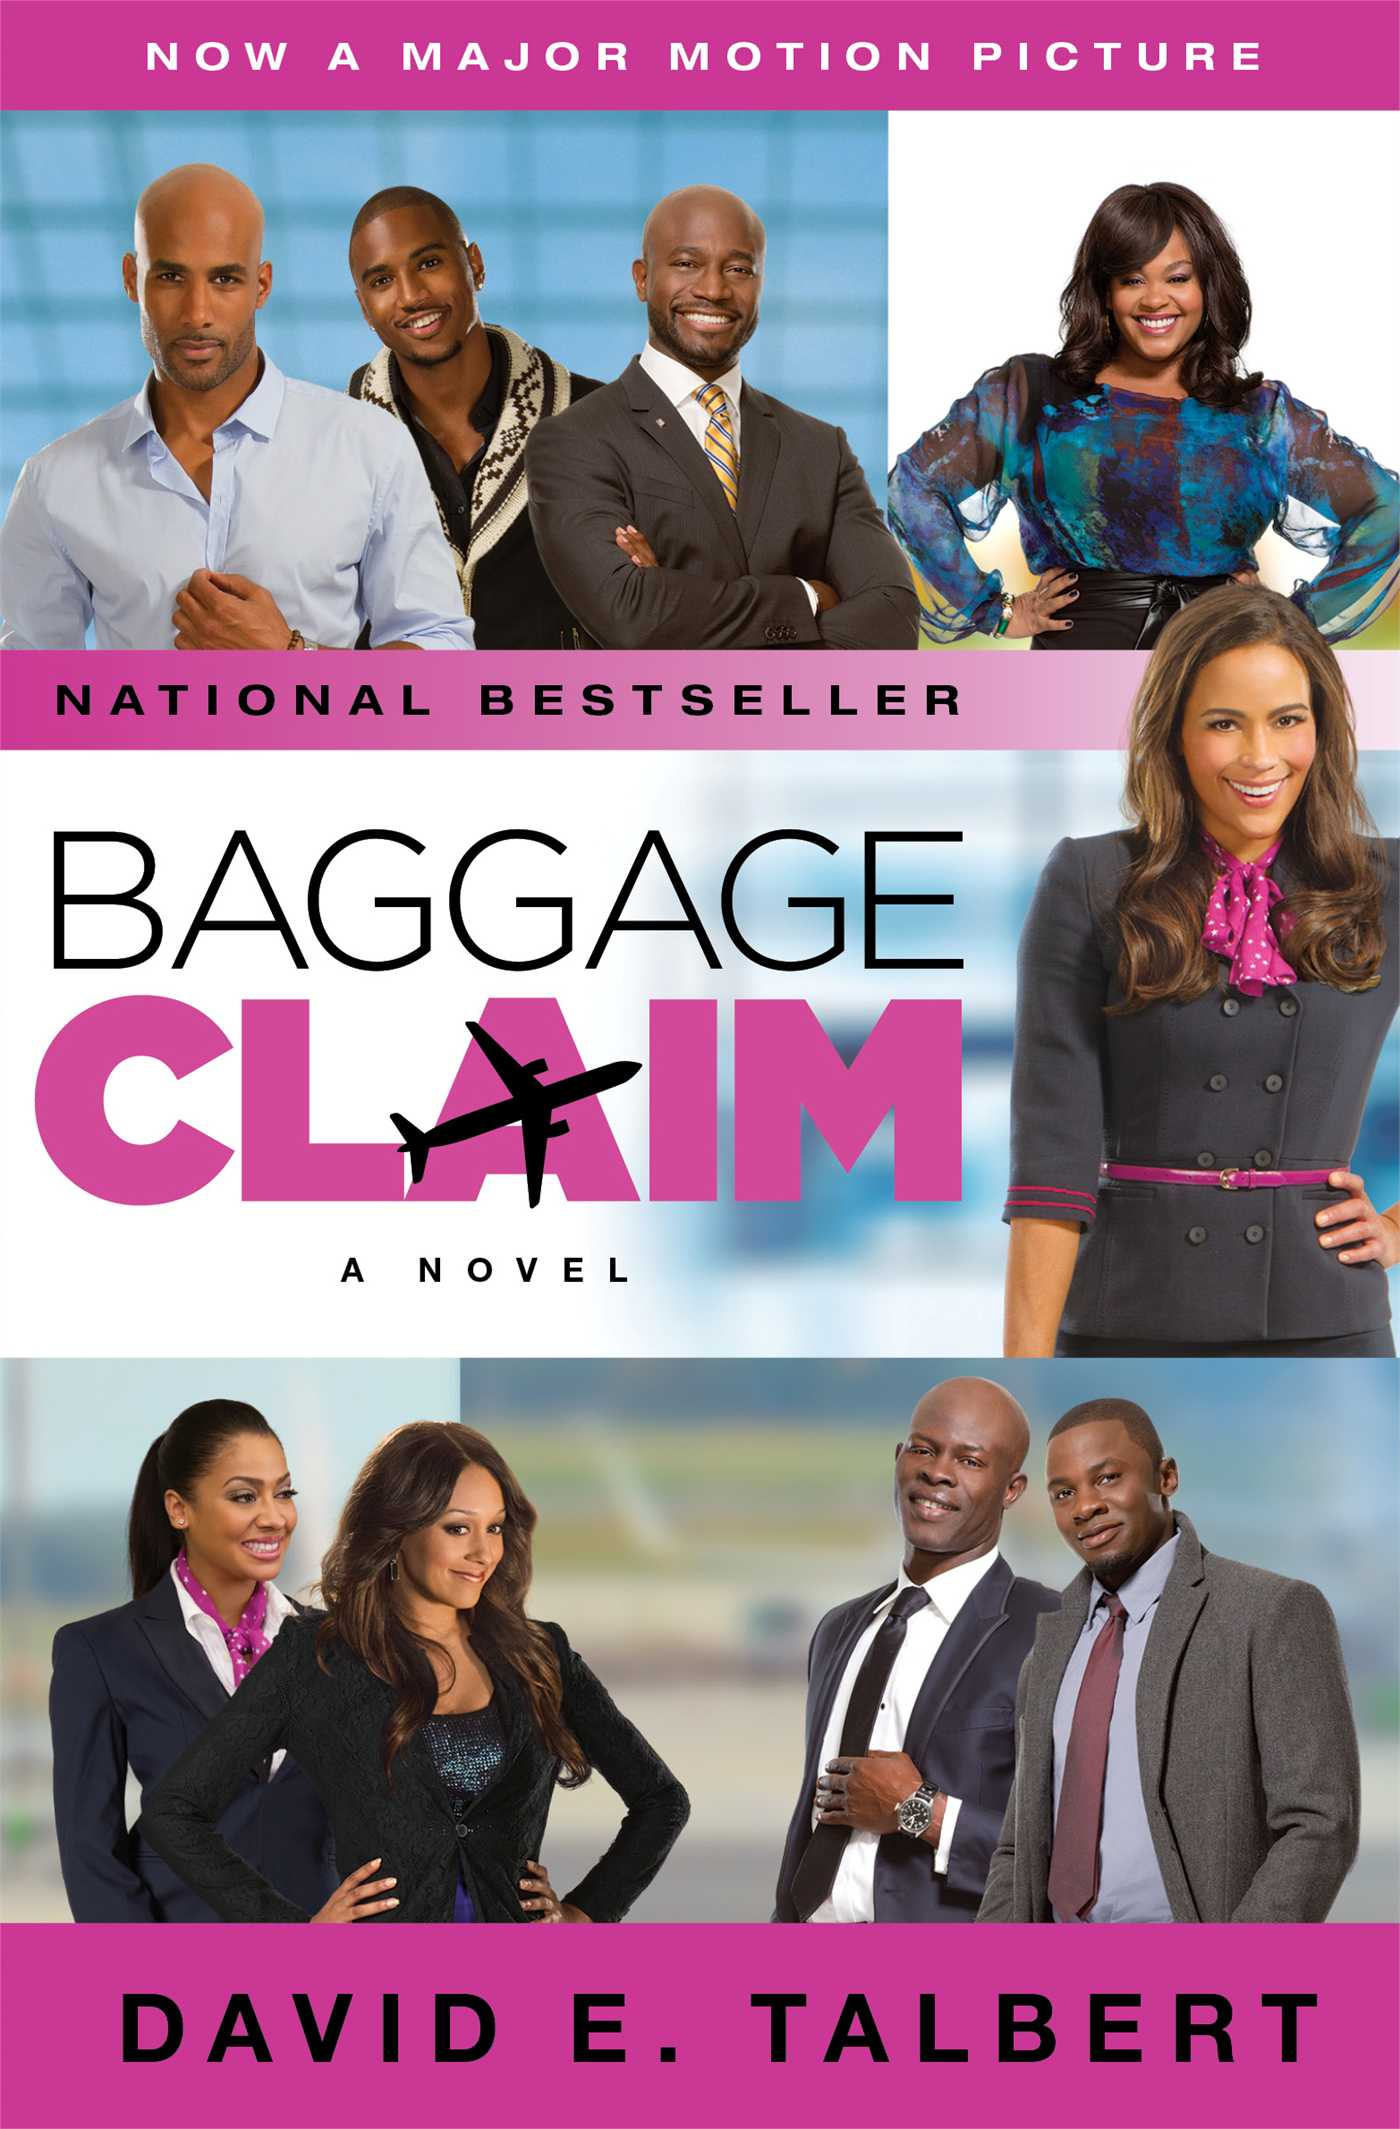 14. Baggage Claim: A Novel